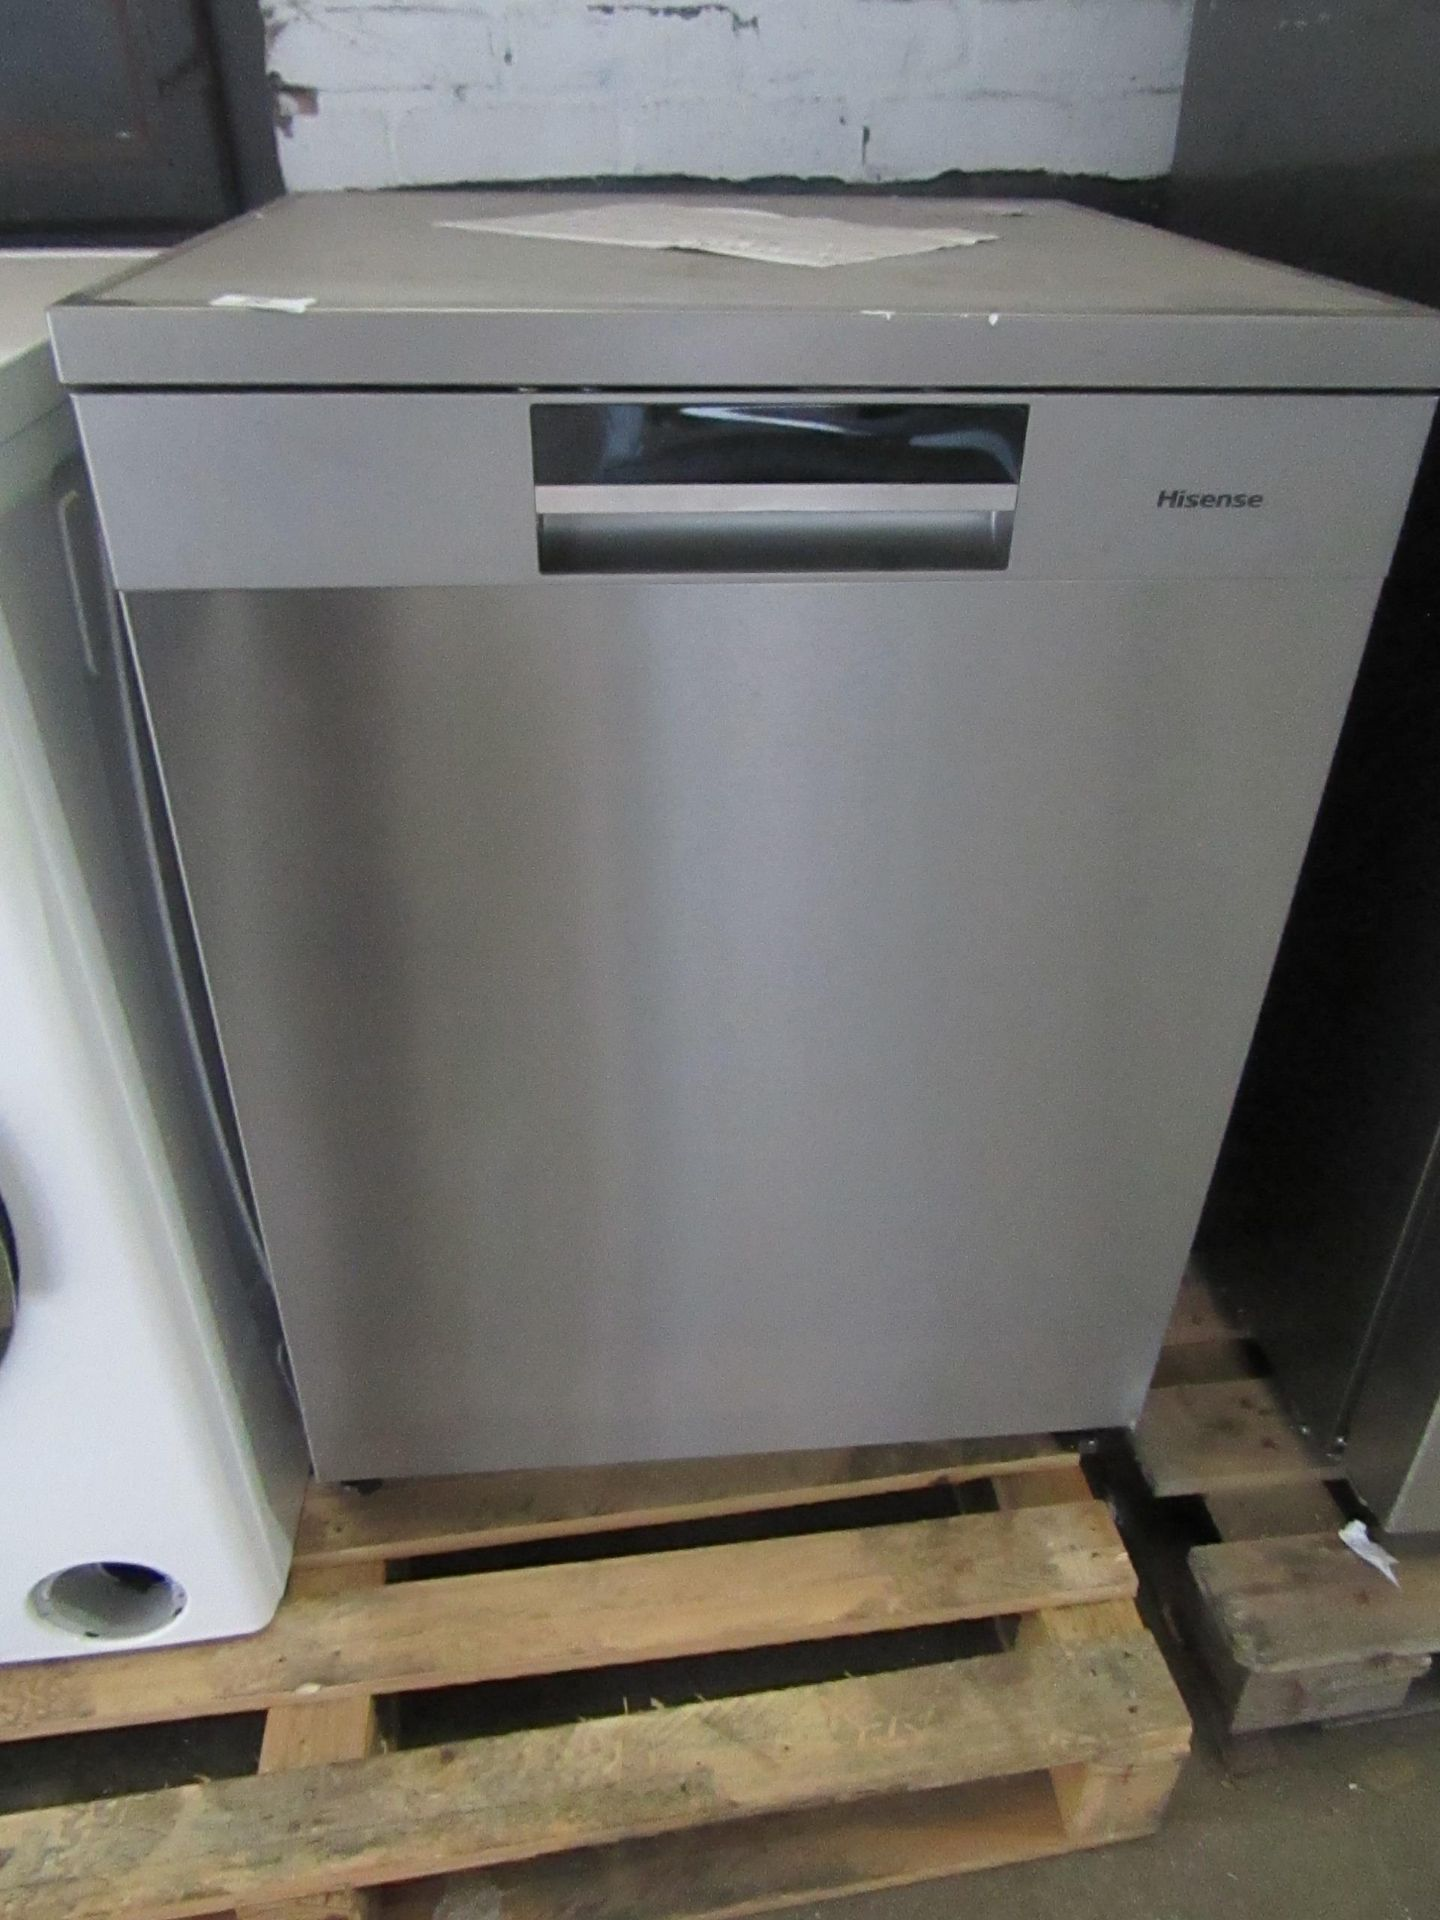 Hisense HS661C60xUK Freestanding Dishwasher, powers on and looks fairly clean inside, the door